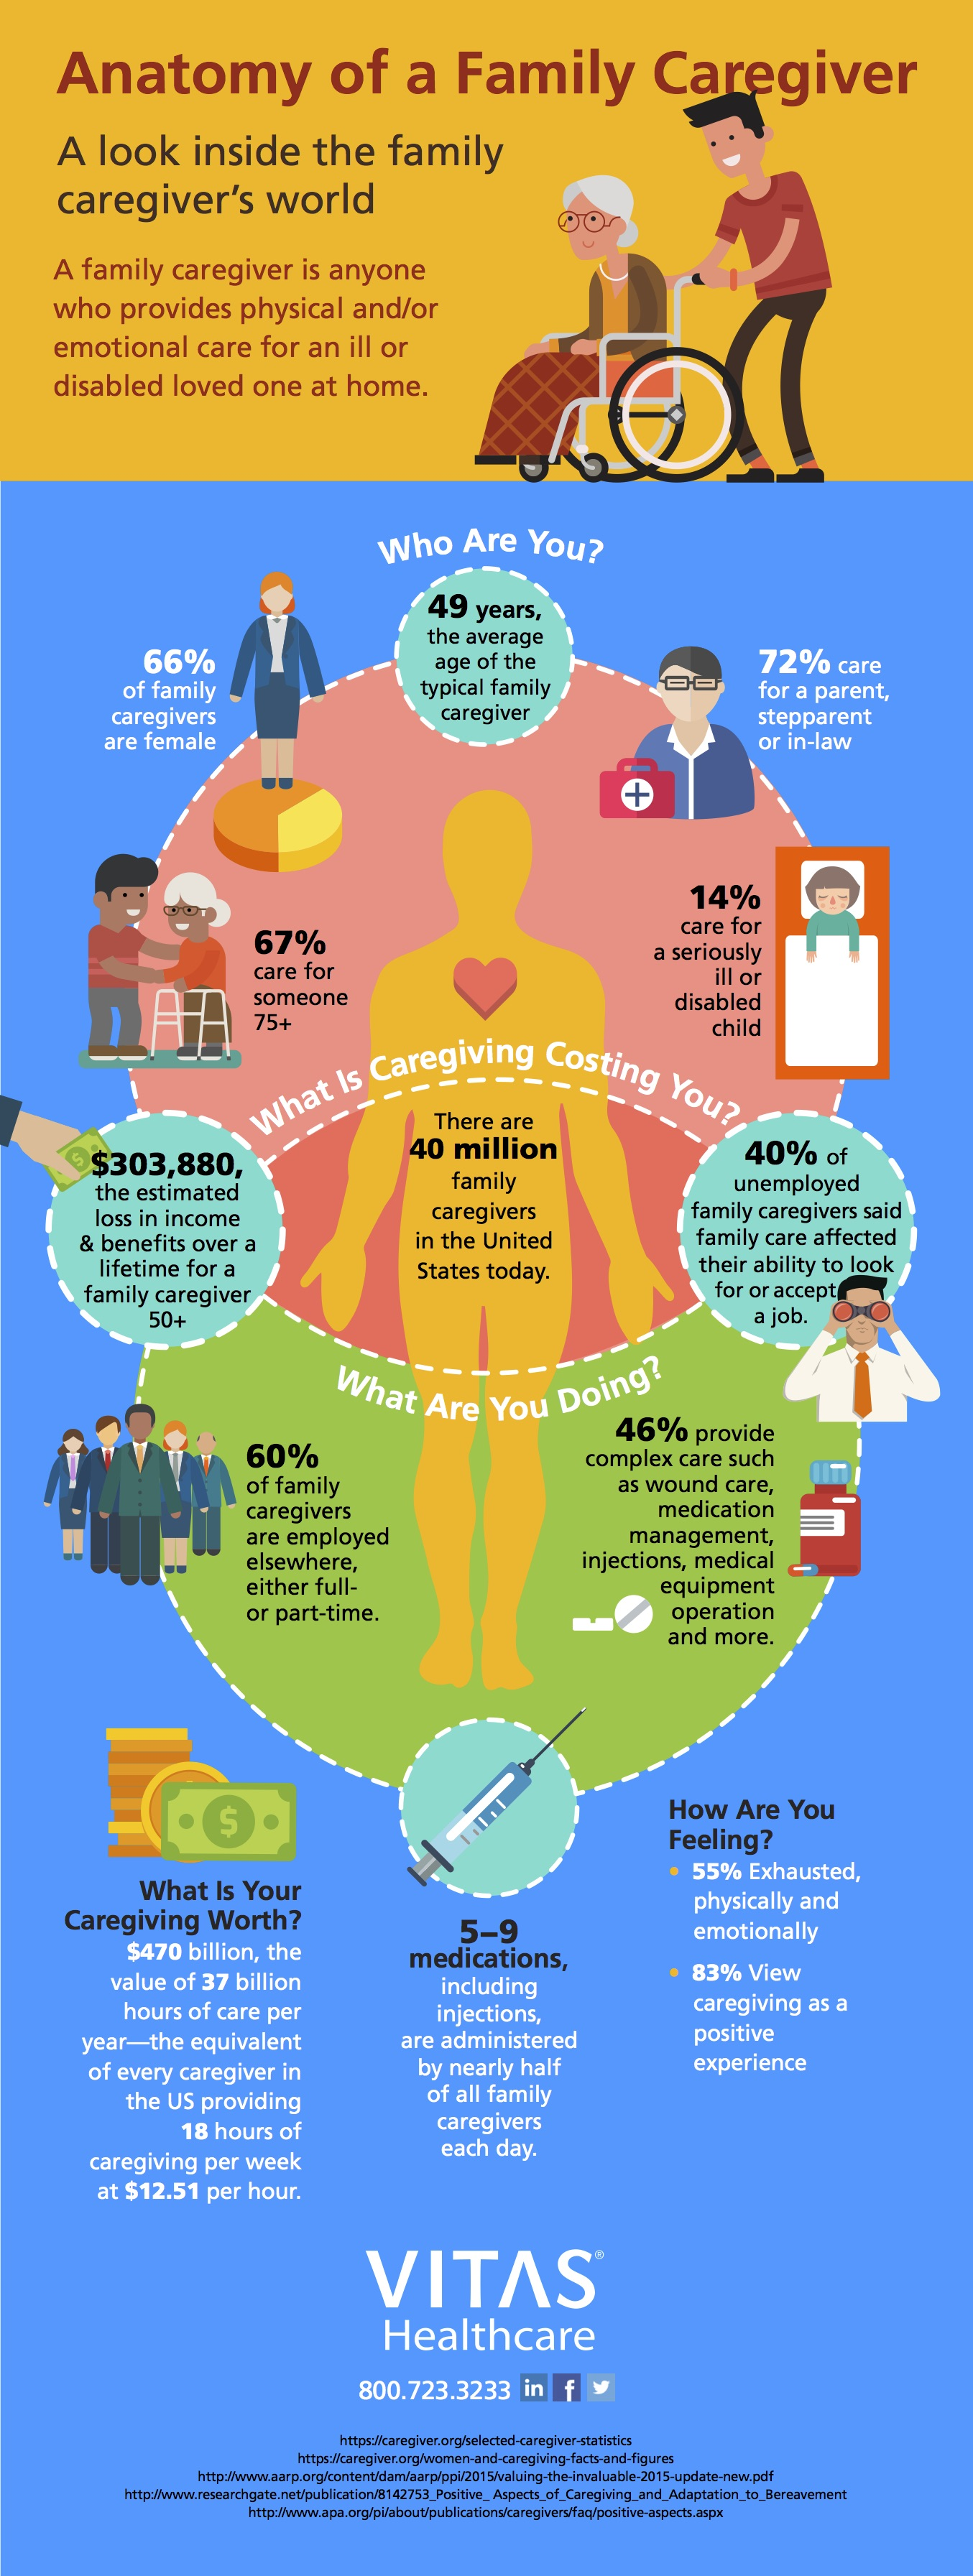 Caregiver Facts and Figures